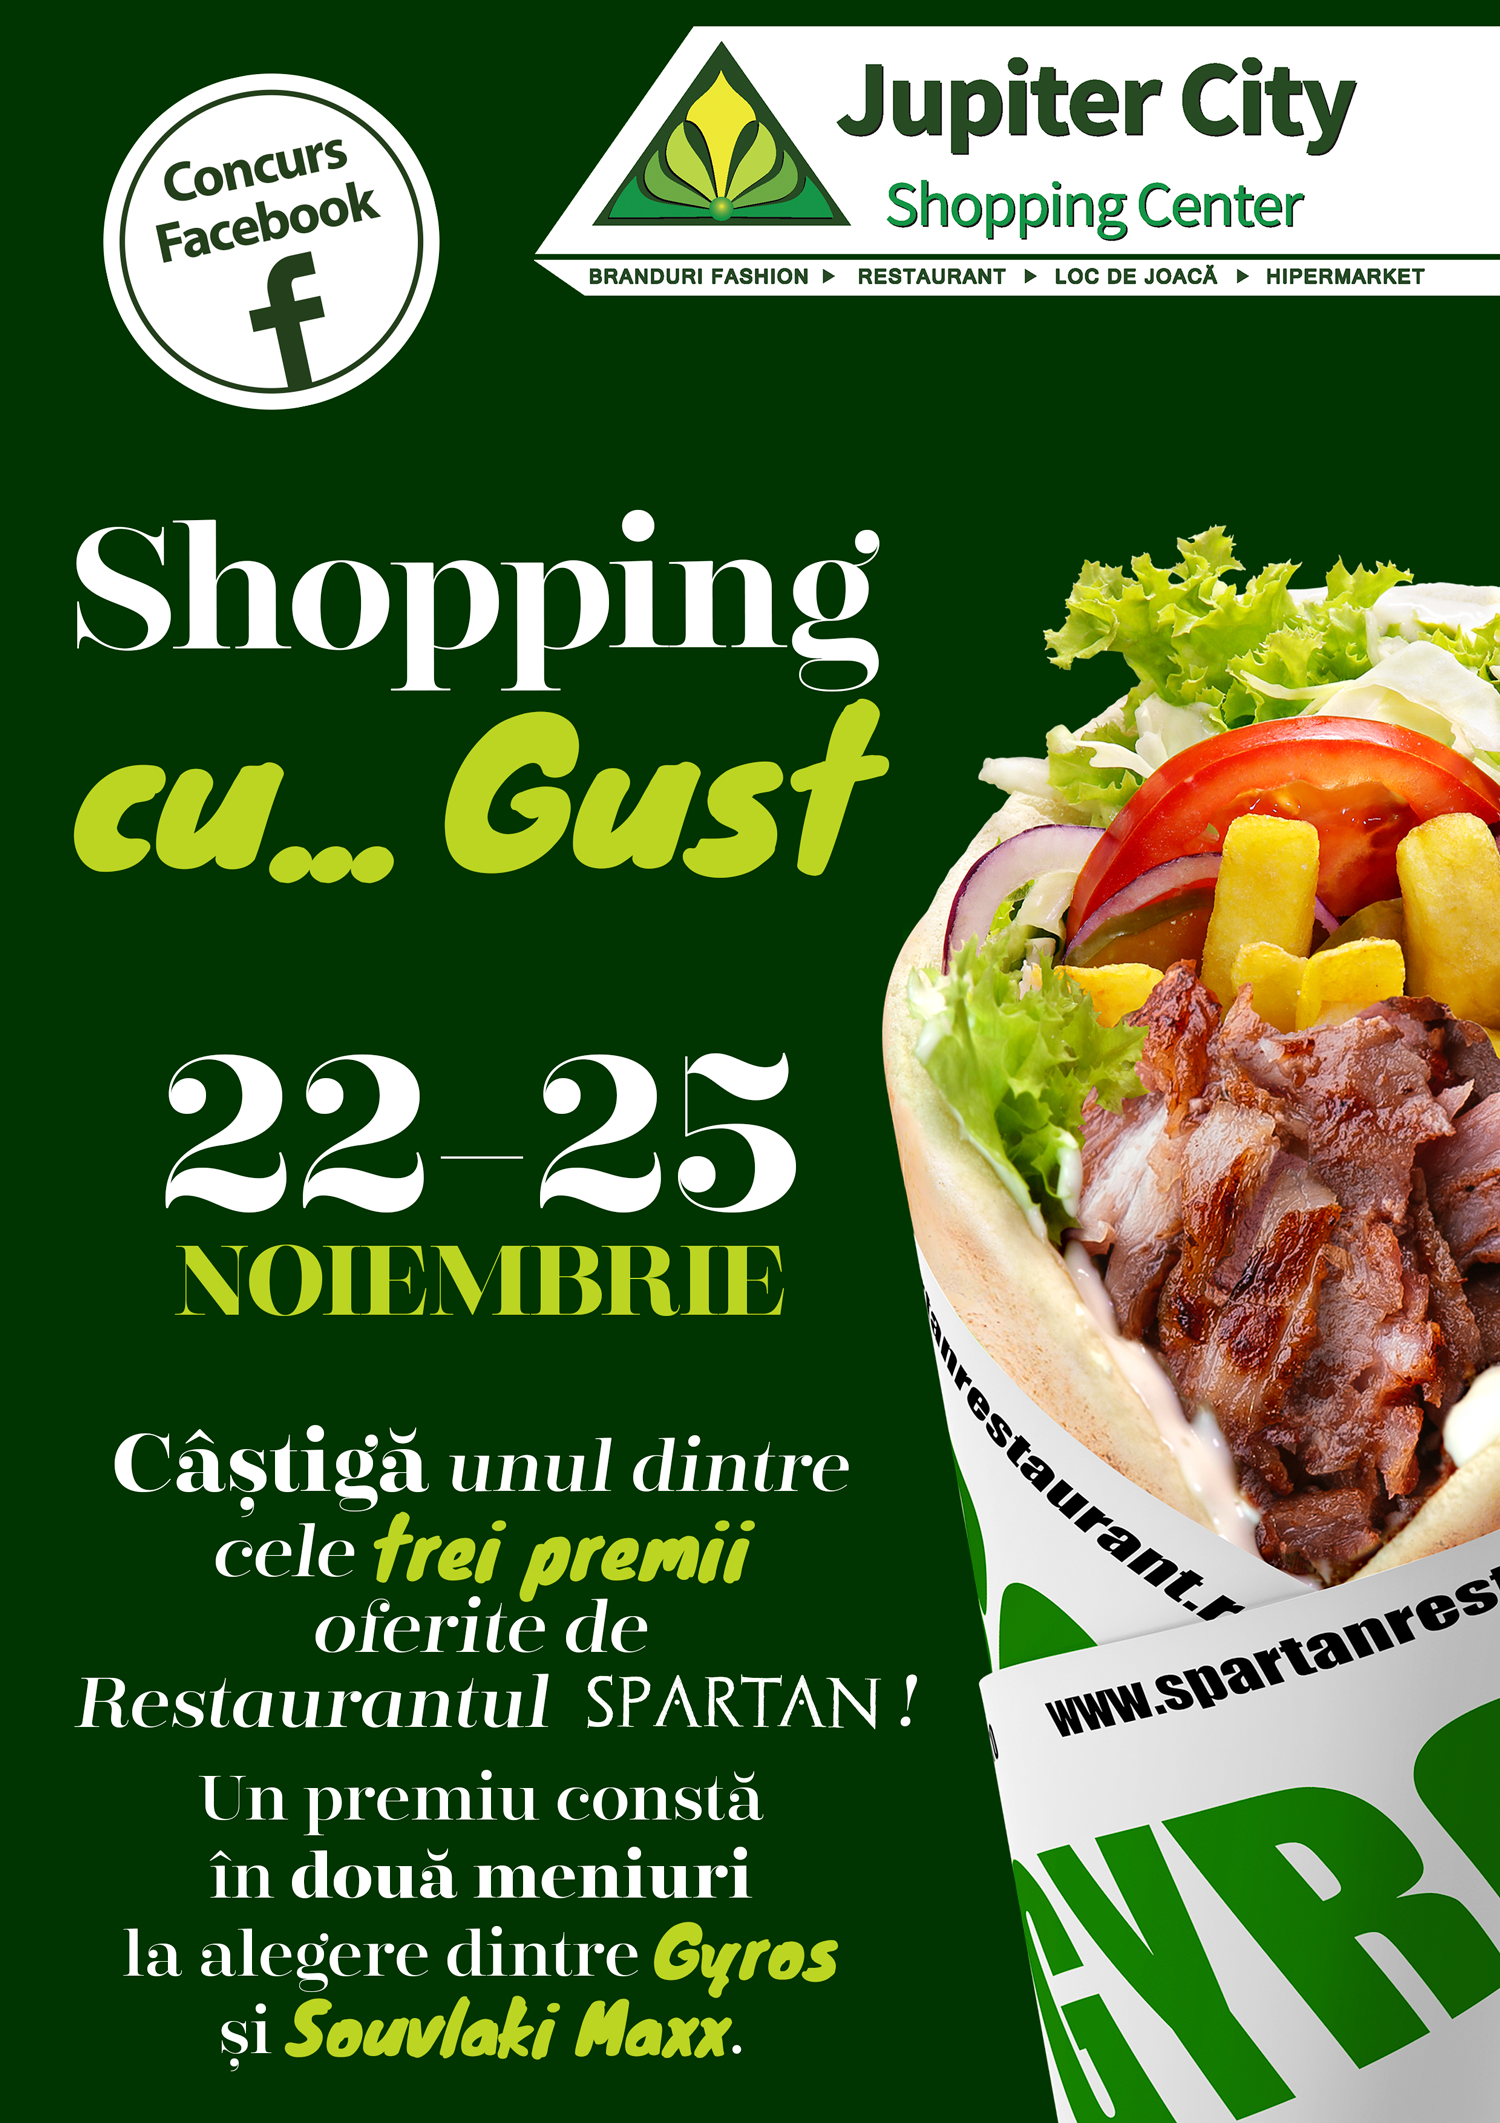 Concurs Facebook – Shopping cu… gust